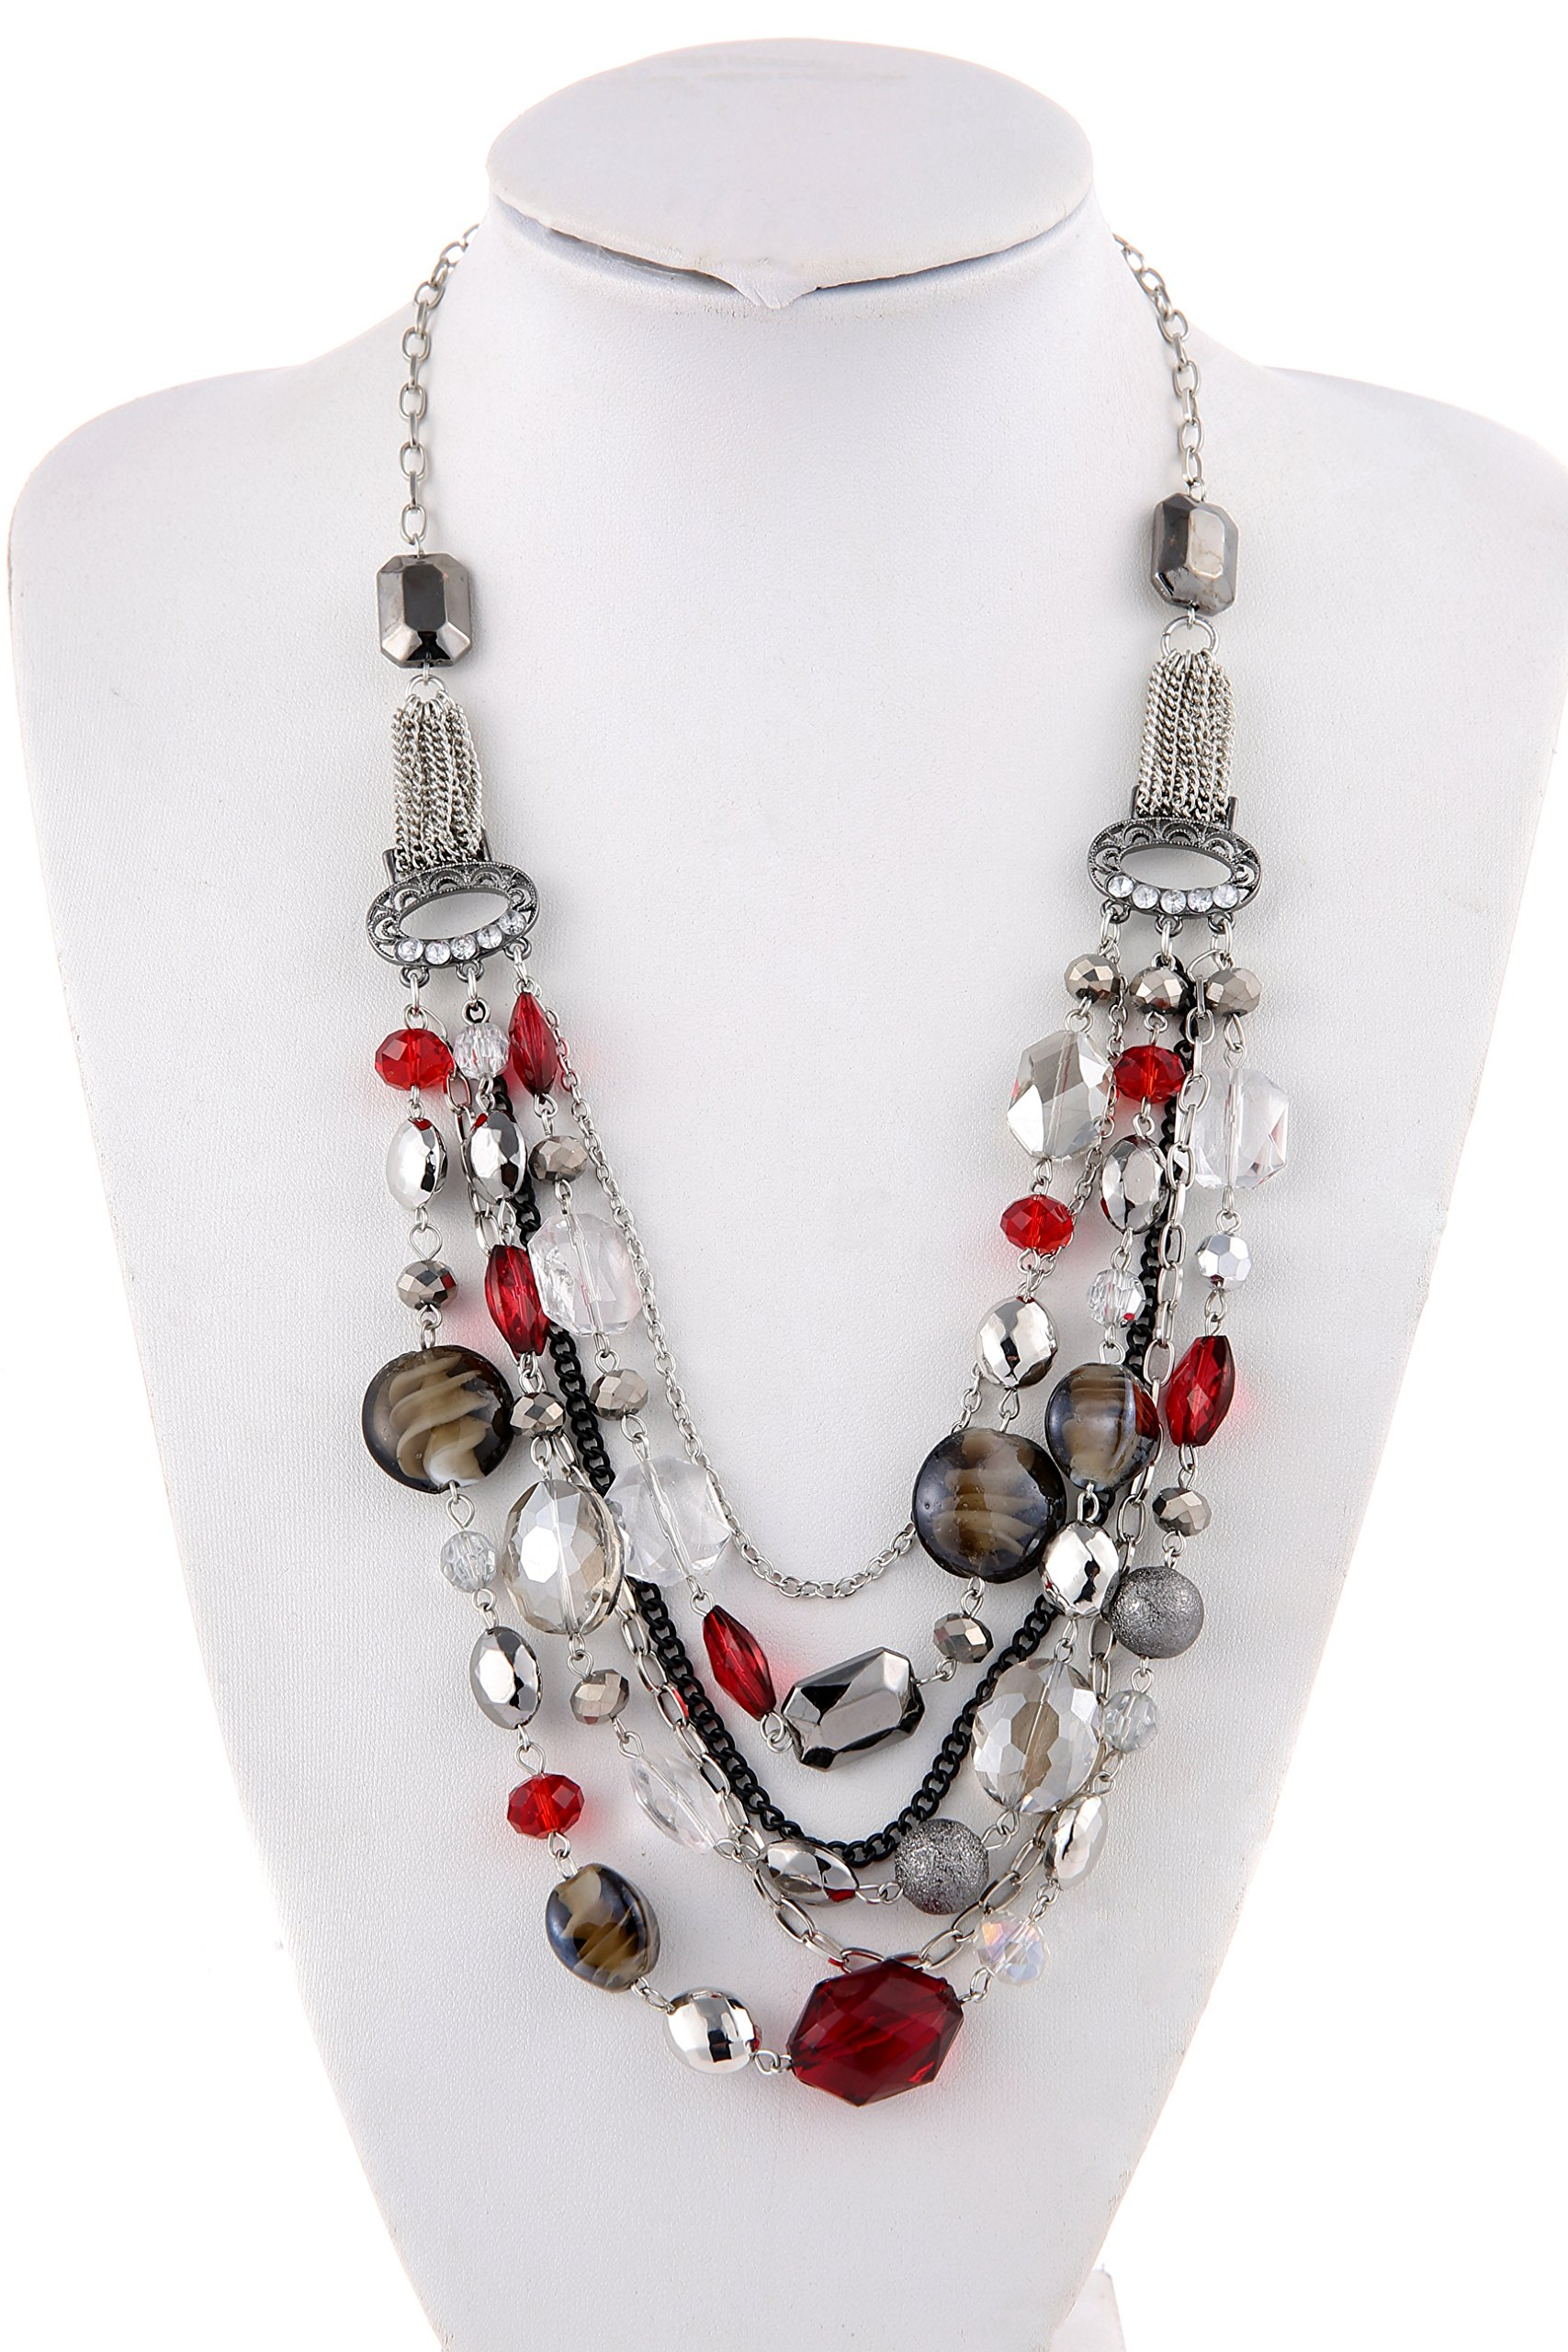 Bocar Newest Multi Layer Chain Crystal Colored Glaze Statement Women Necklace (NK-10061-red)